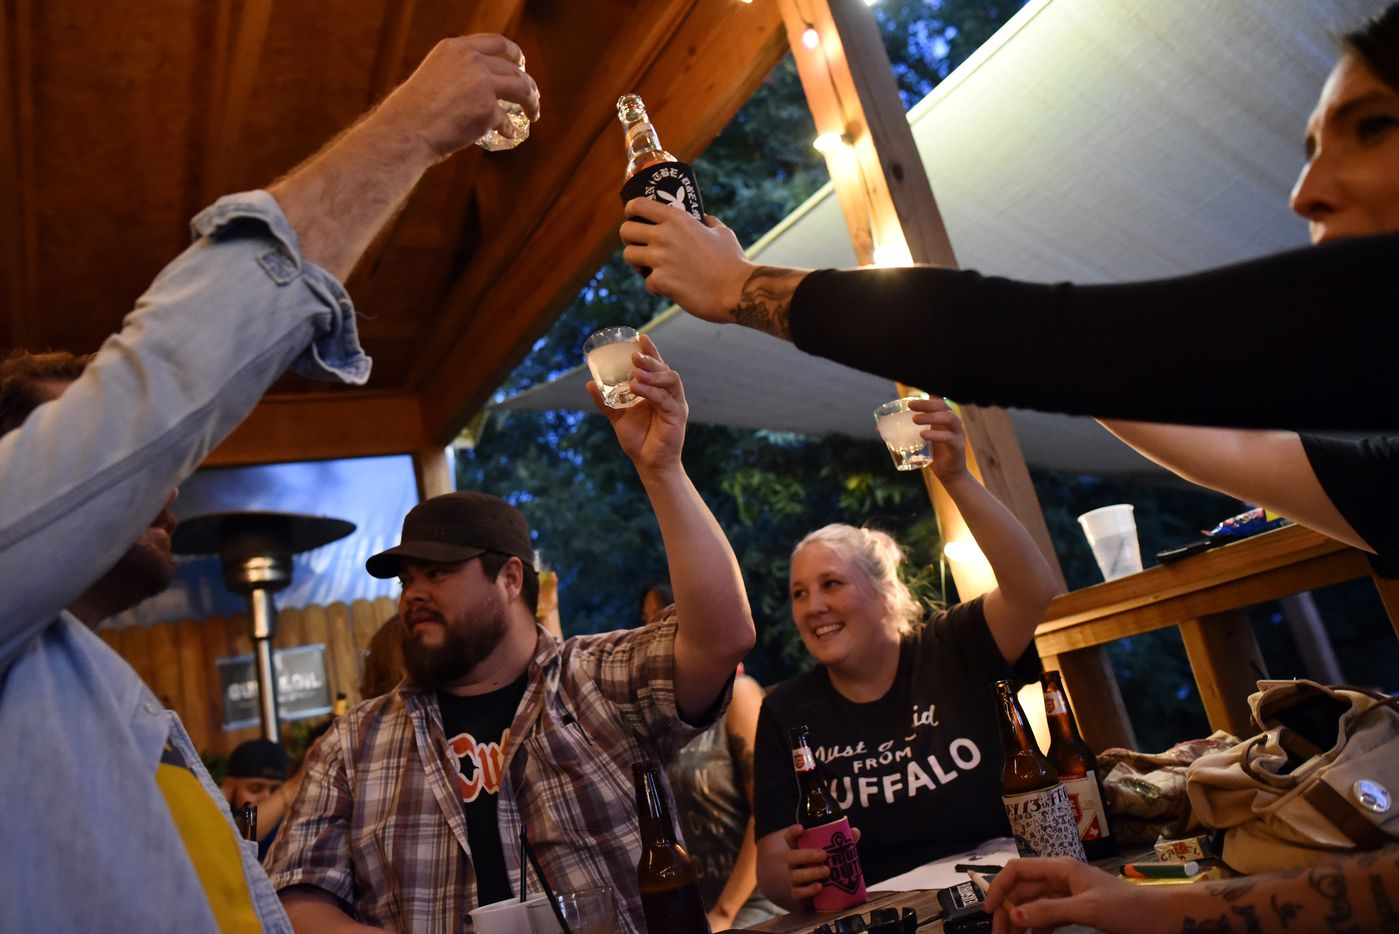 Mikhail Morales (left) and April Benzel raised their drinks to toast the start of the Ten Bells pub quiz at Ten Bells Tavern in the Bishop Arts District in August 2017.